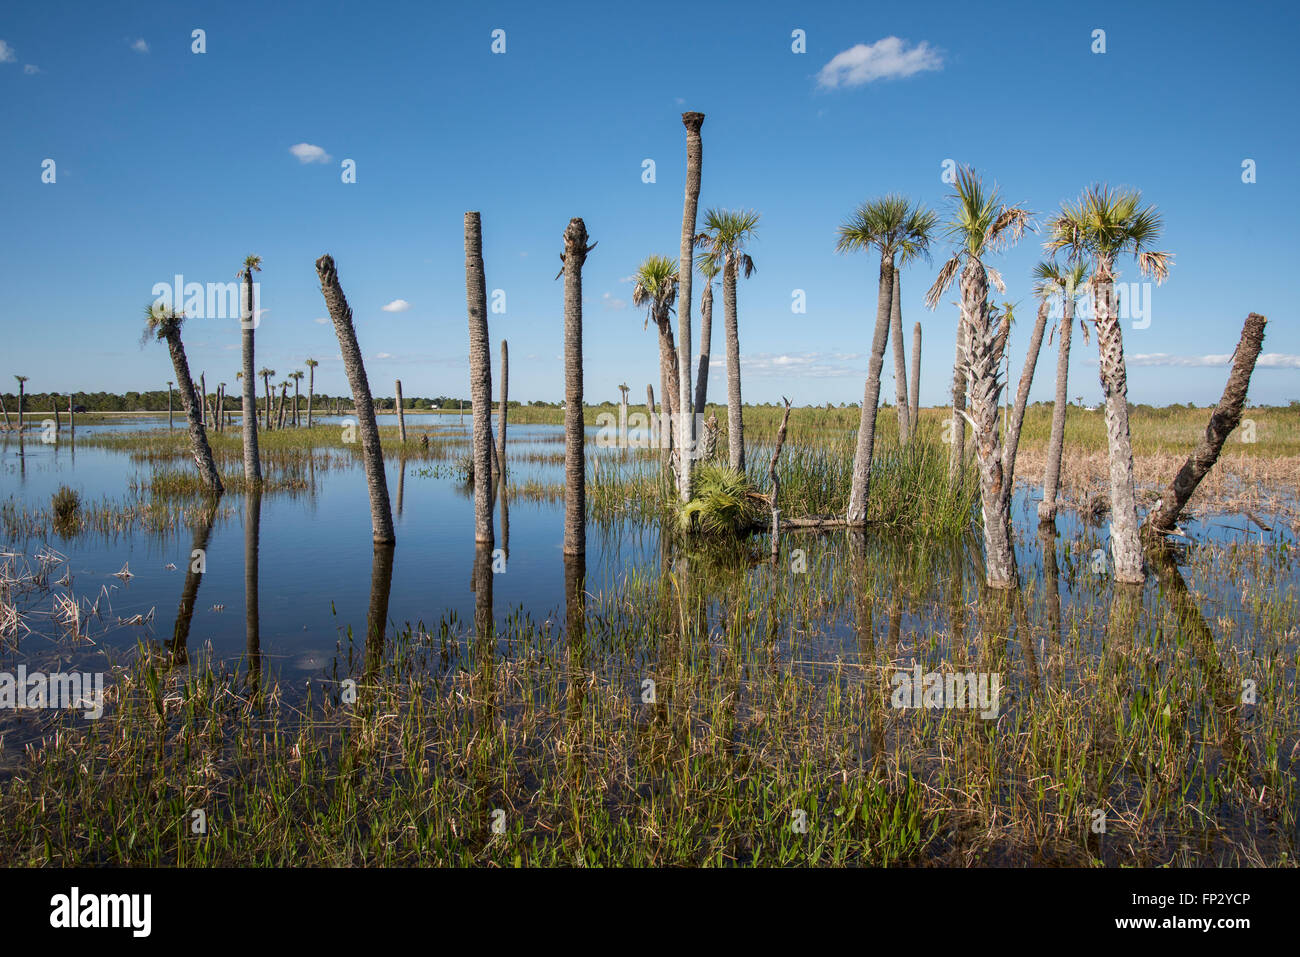 Flooded Sable palmetto head in man made wetlands preserve at Viera, FL - Stock Image